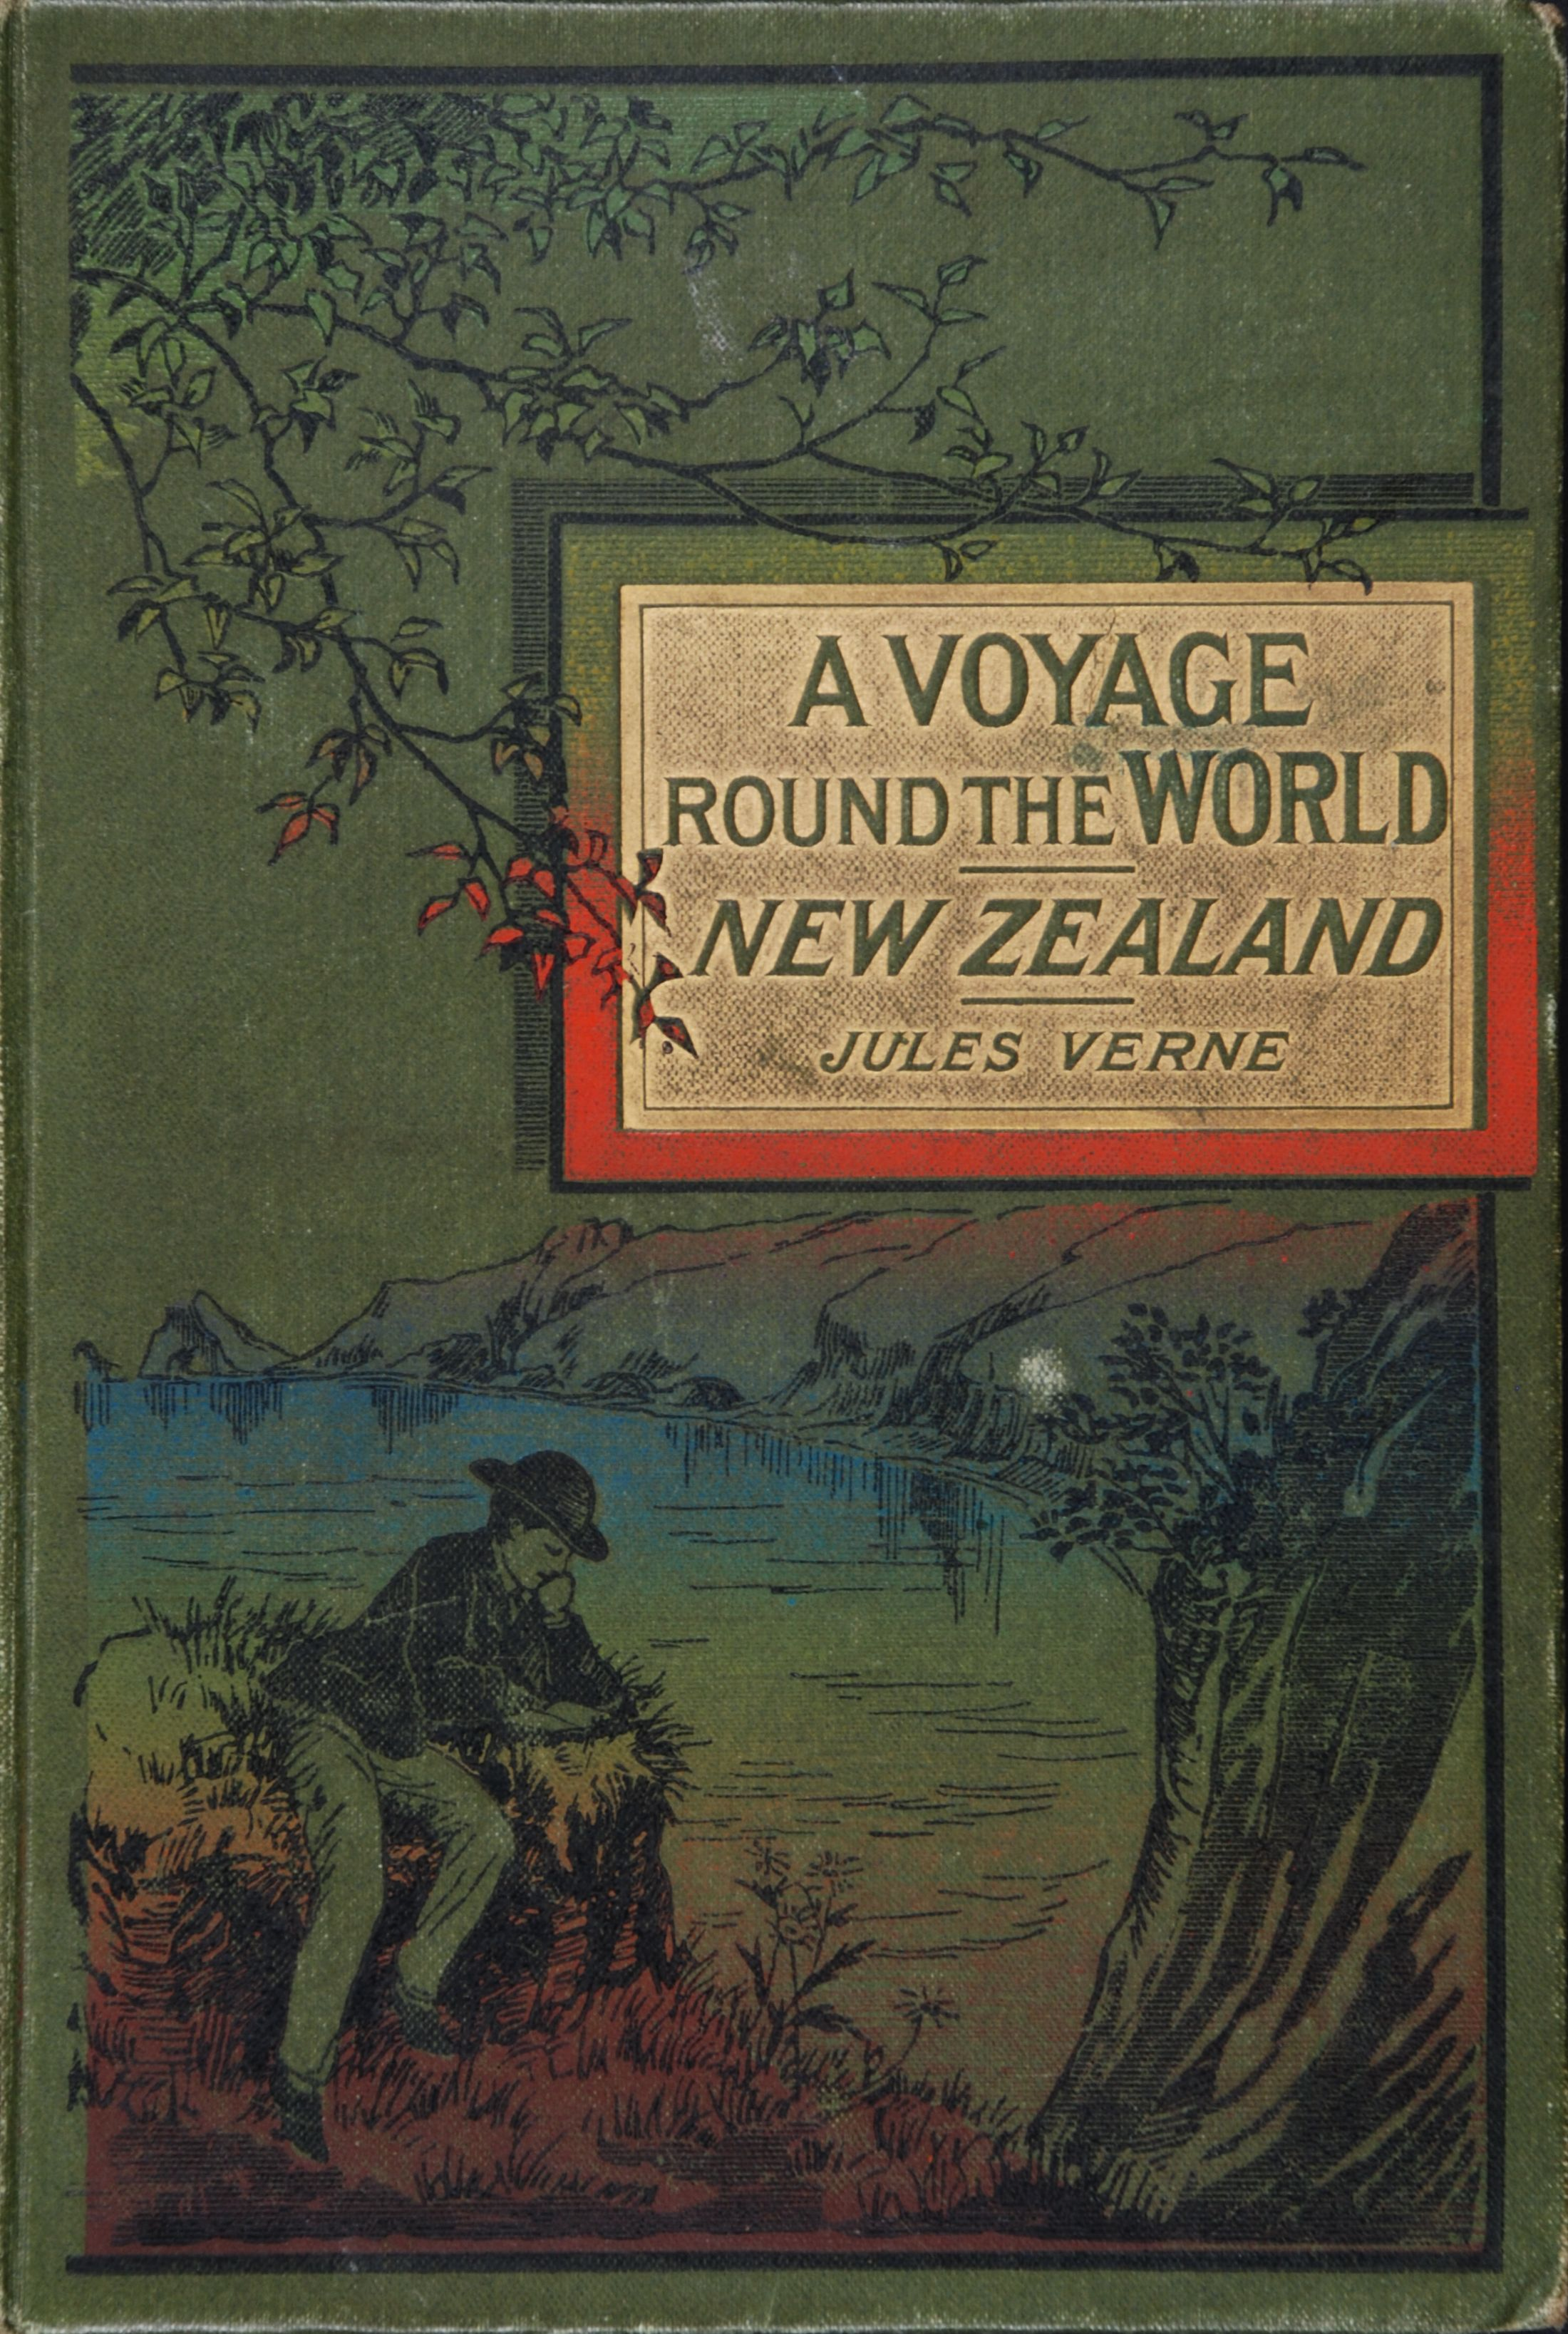 Jules Verne. A voyage round the world. New Zealand. London: Routledge, [1876?].